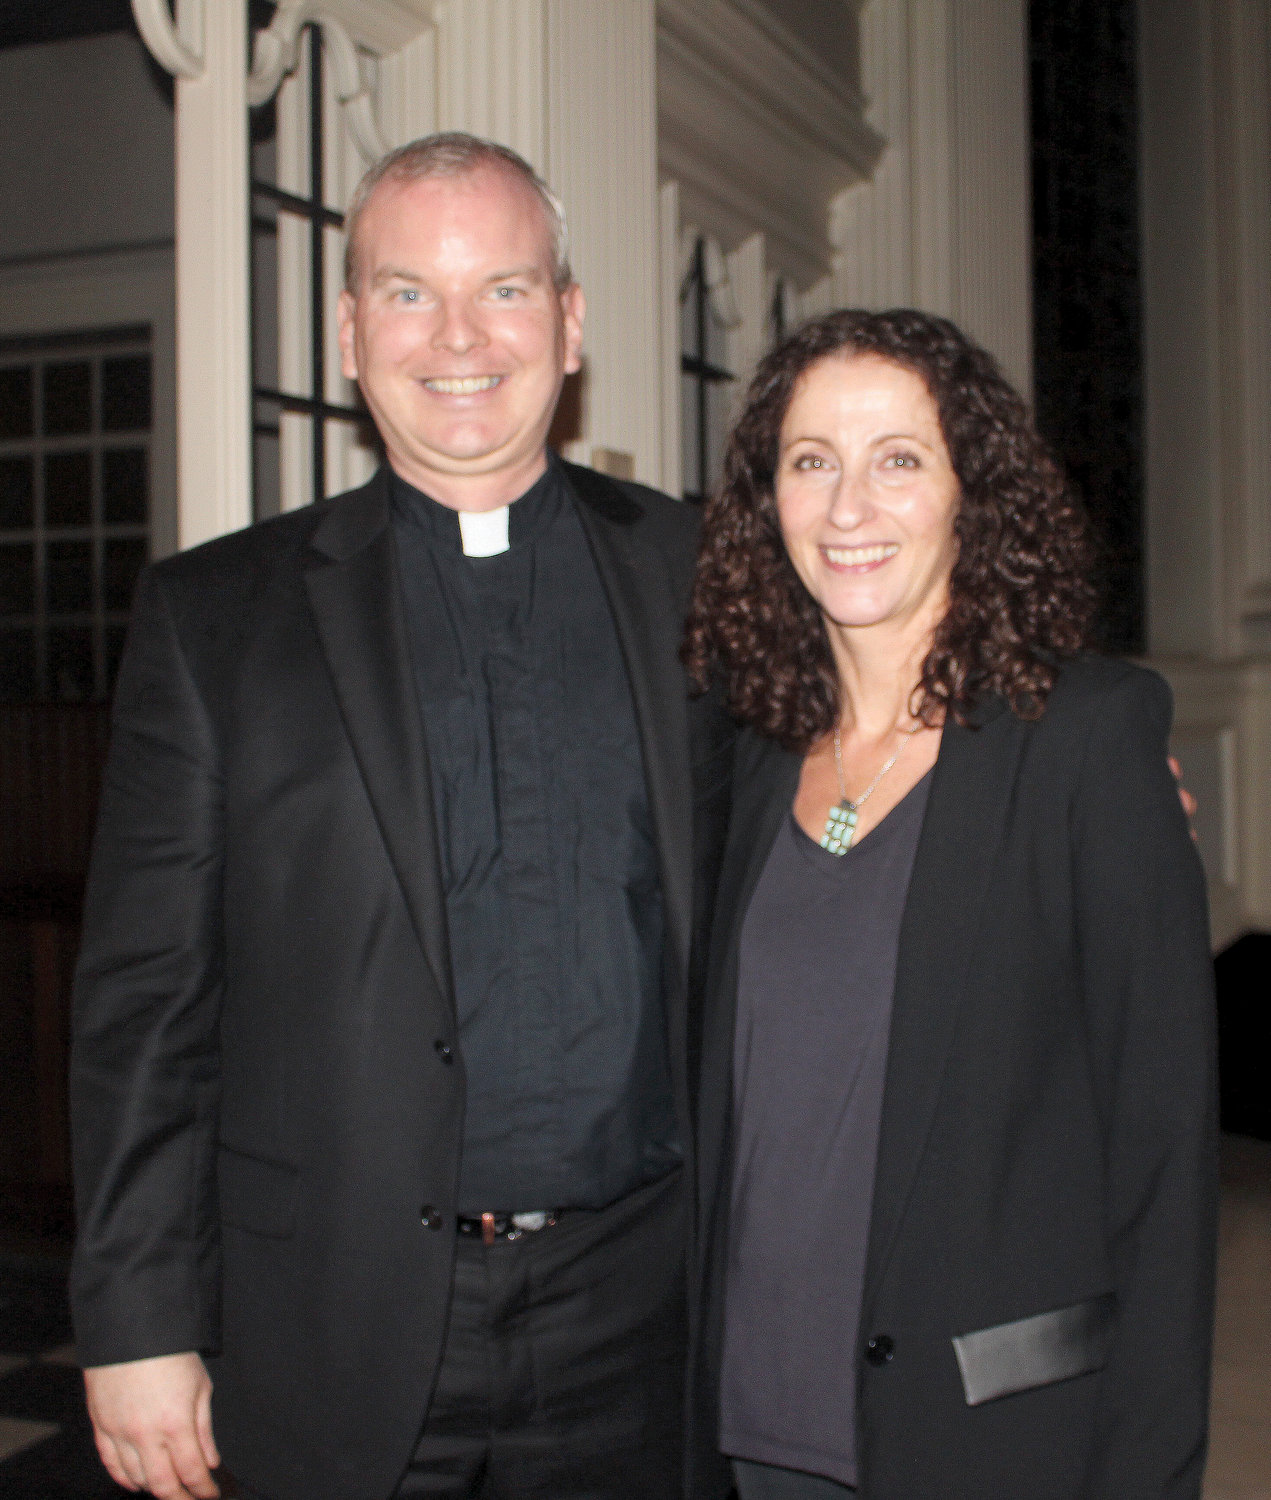 Roisin Carty, right, was the guest speaker Oct. 21 for the Thomas Merton Lecture at Corpus Christi Church in Manhattan where her cousin, Father Daniel O'Reilly, left, is the pastor.